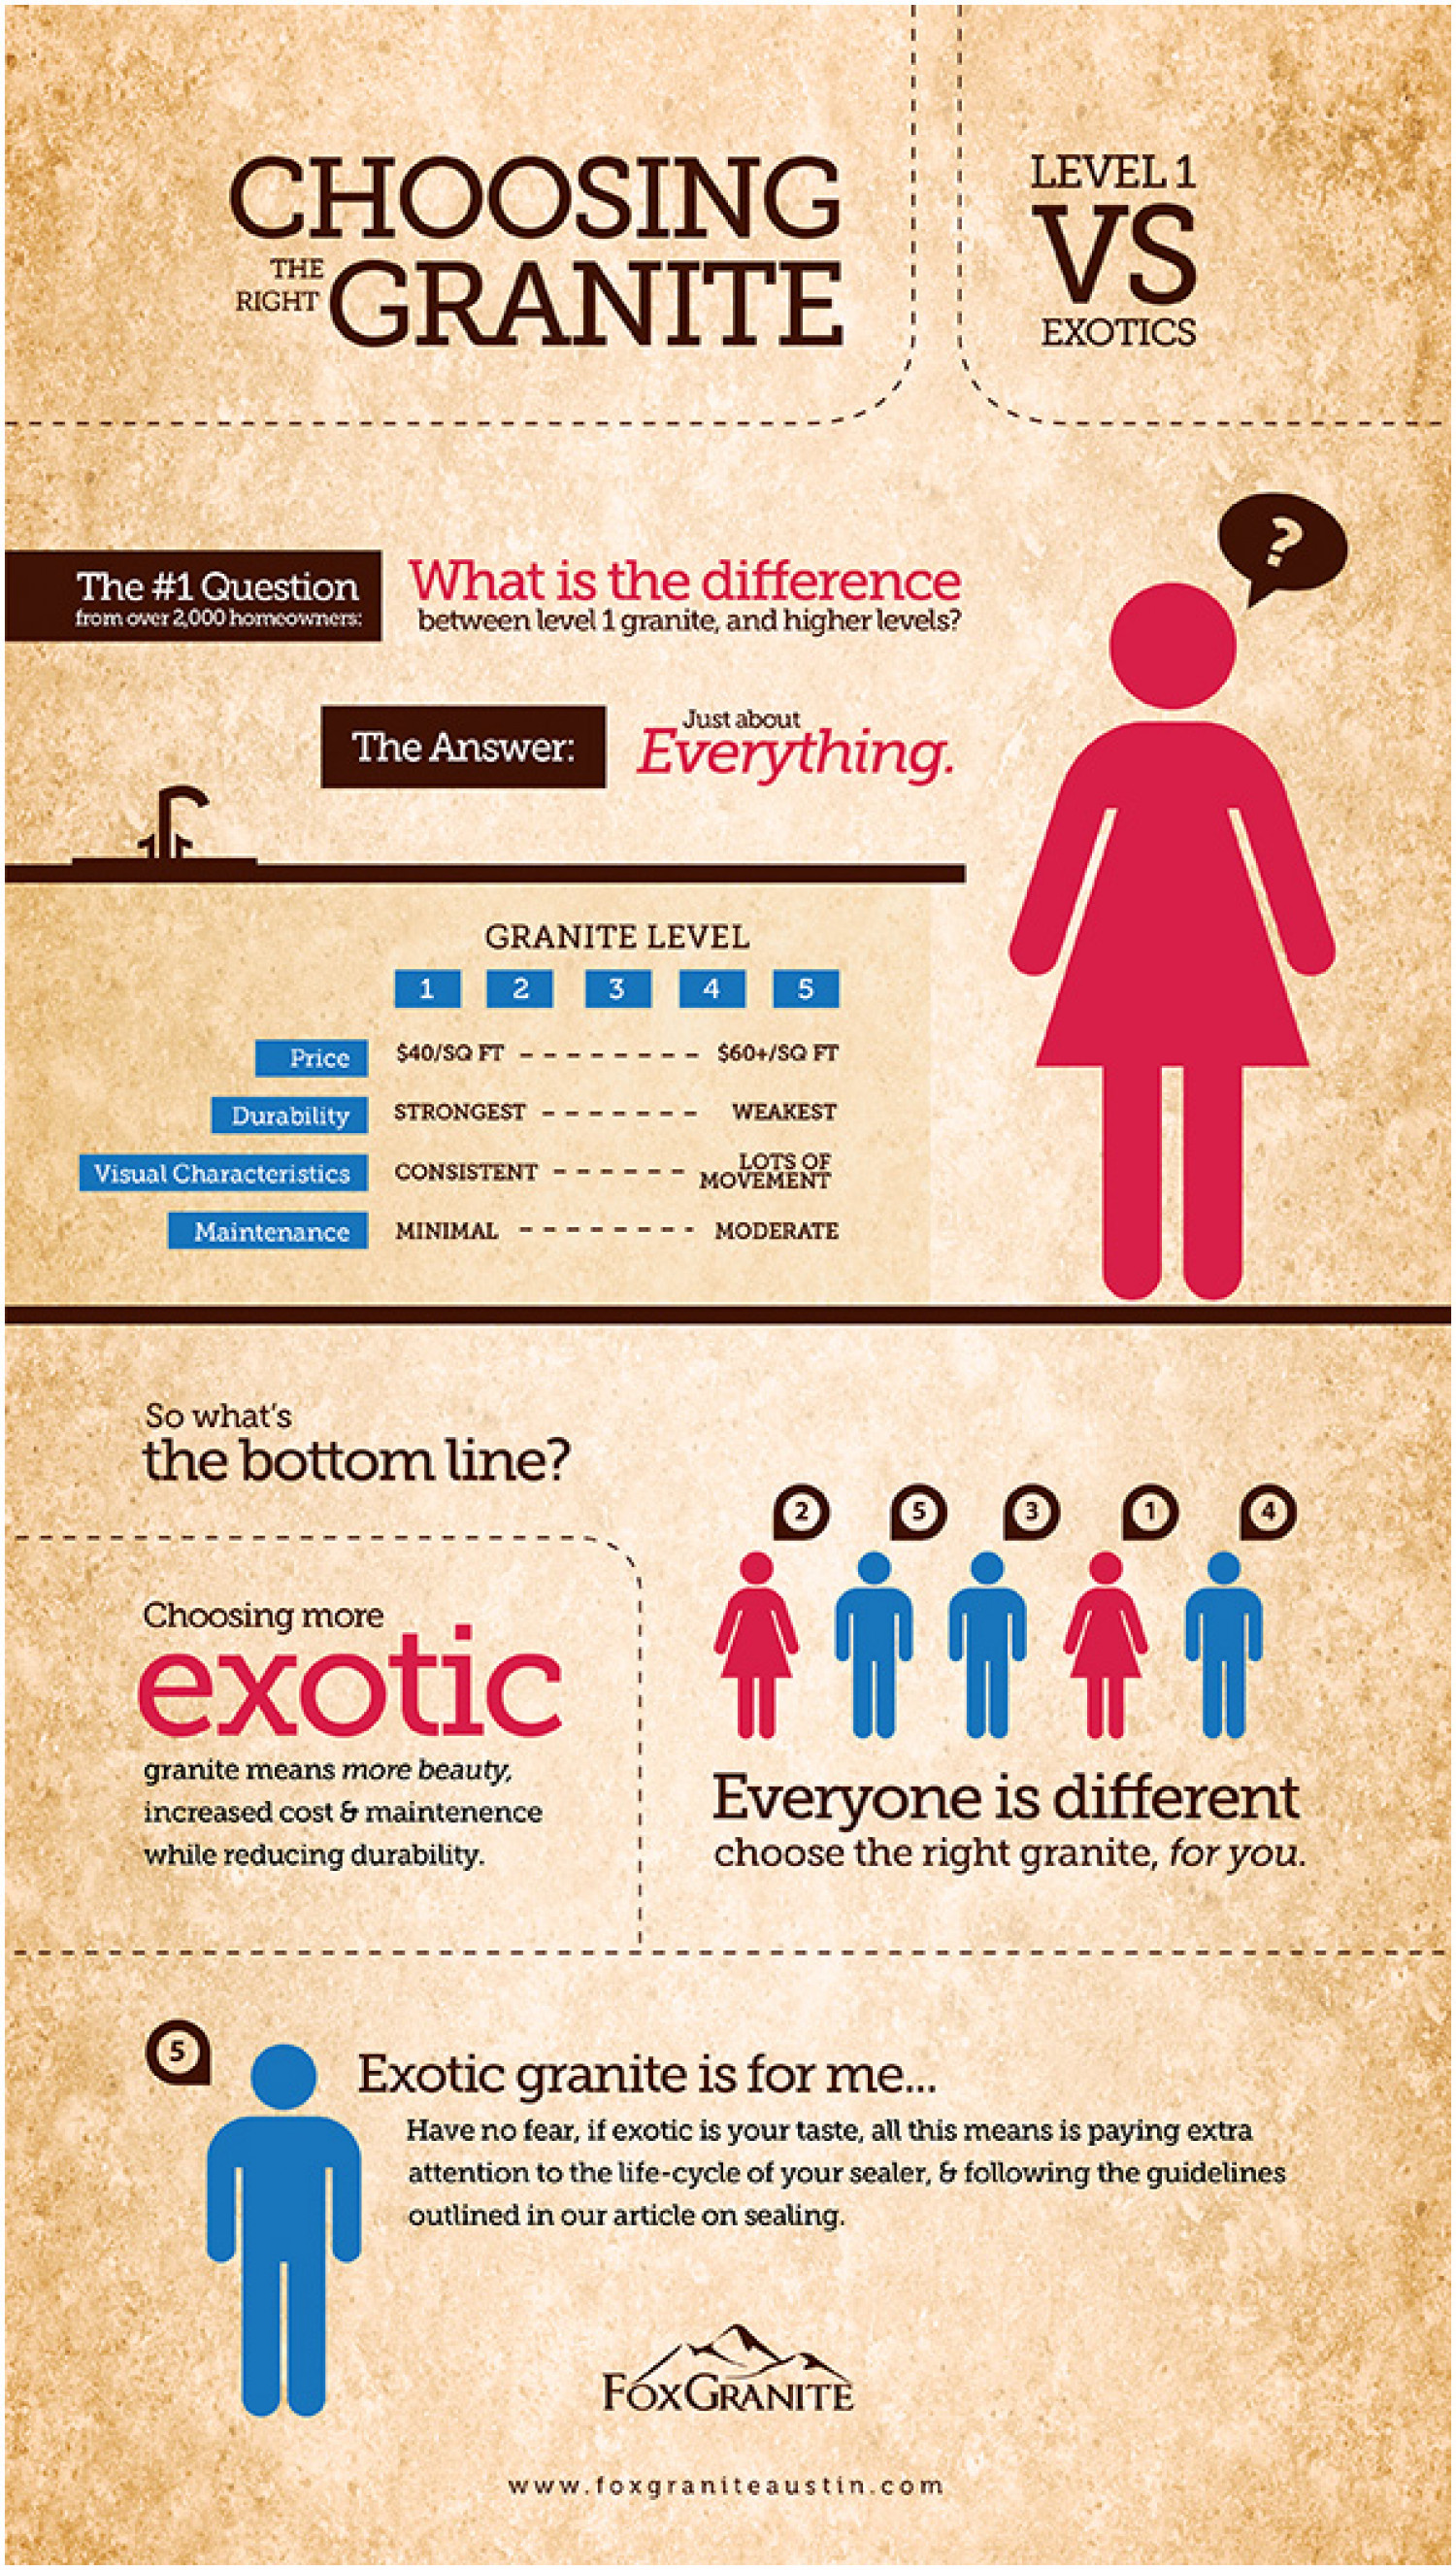 Chosing The Right Granite Infographic